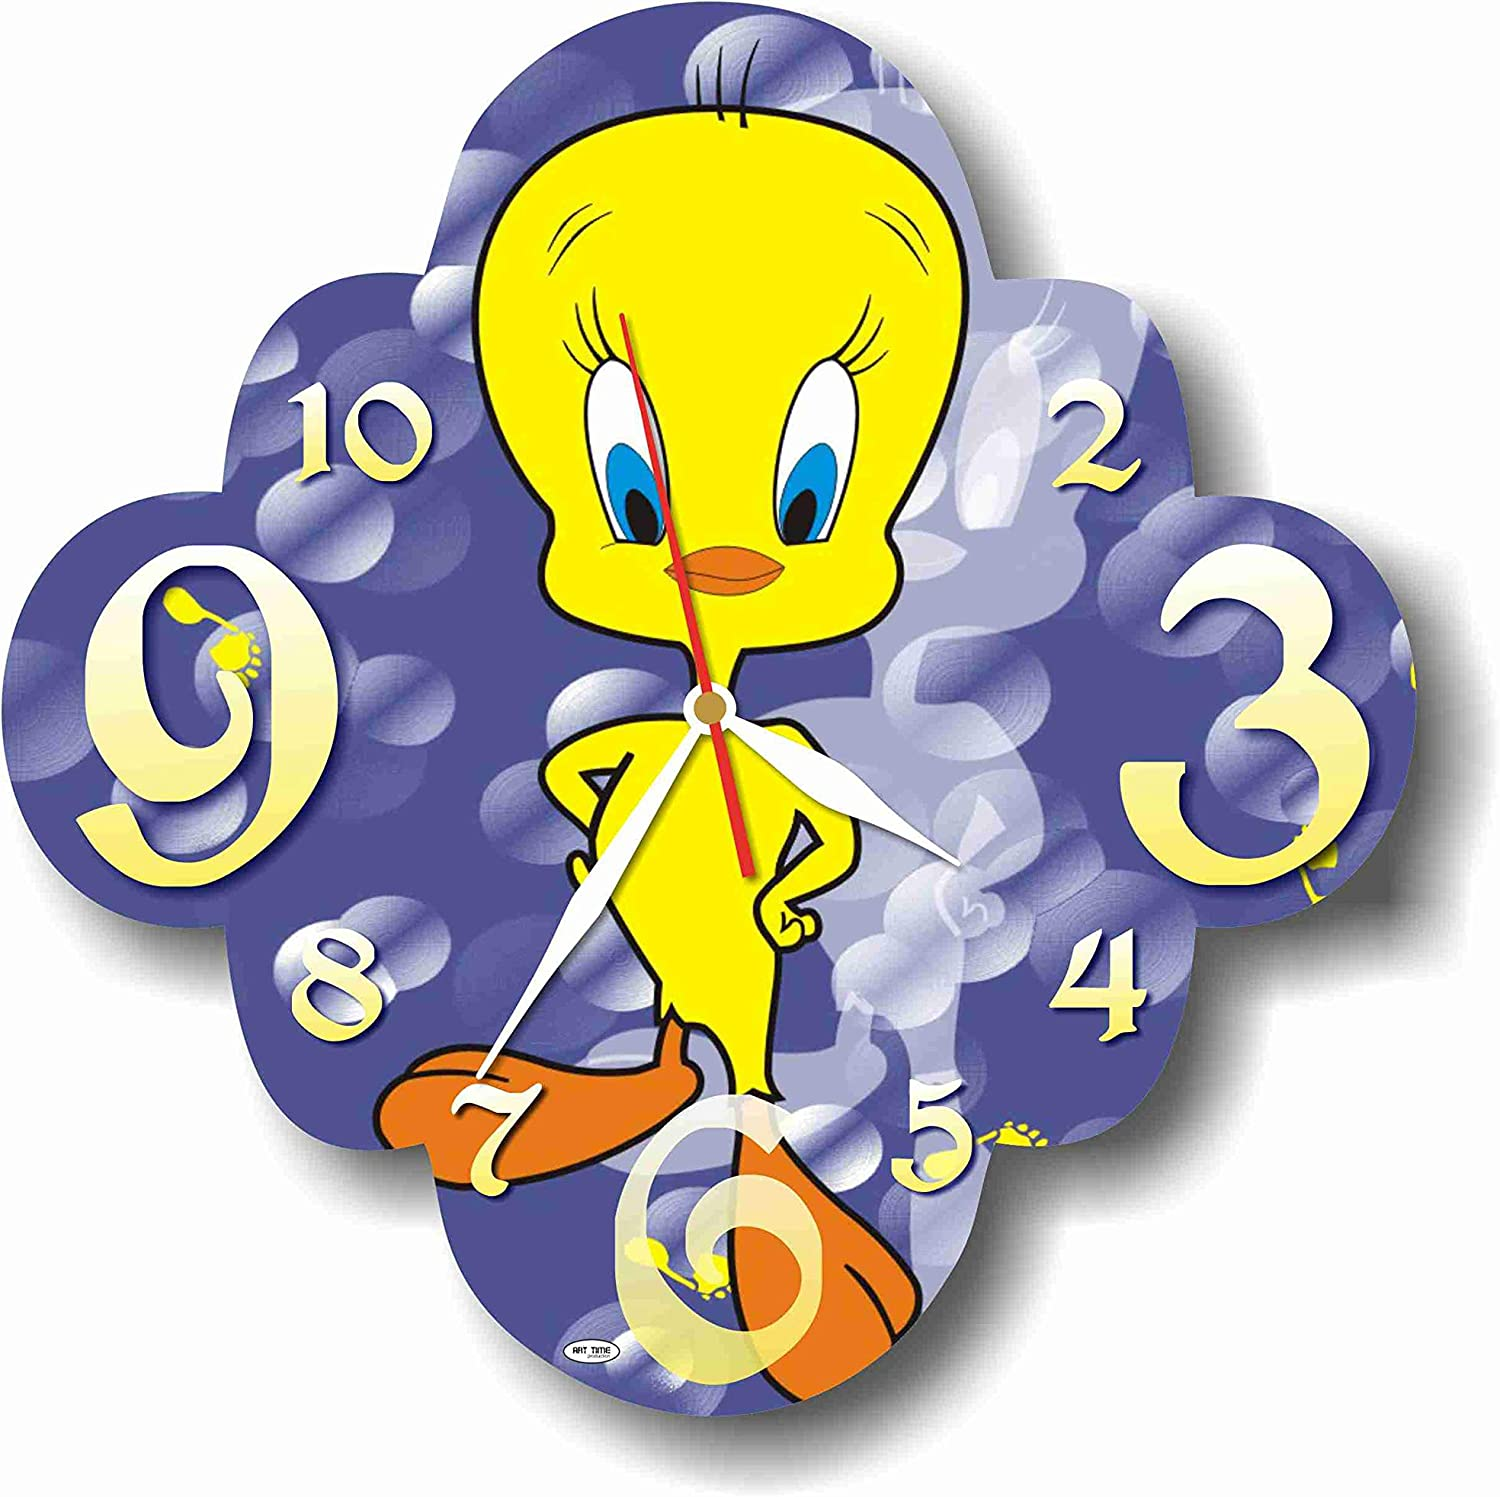 MAGIC WALL CLOCK FOR DISNEY FANS Looney Tunes-Tweety 11'' Handmade Made of Acrylic Glass - Get Unique décor for Home or Office – Best Gift Ideas for Kids, Friends, Parents and Your Soul Mates